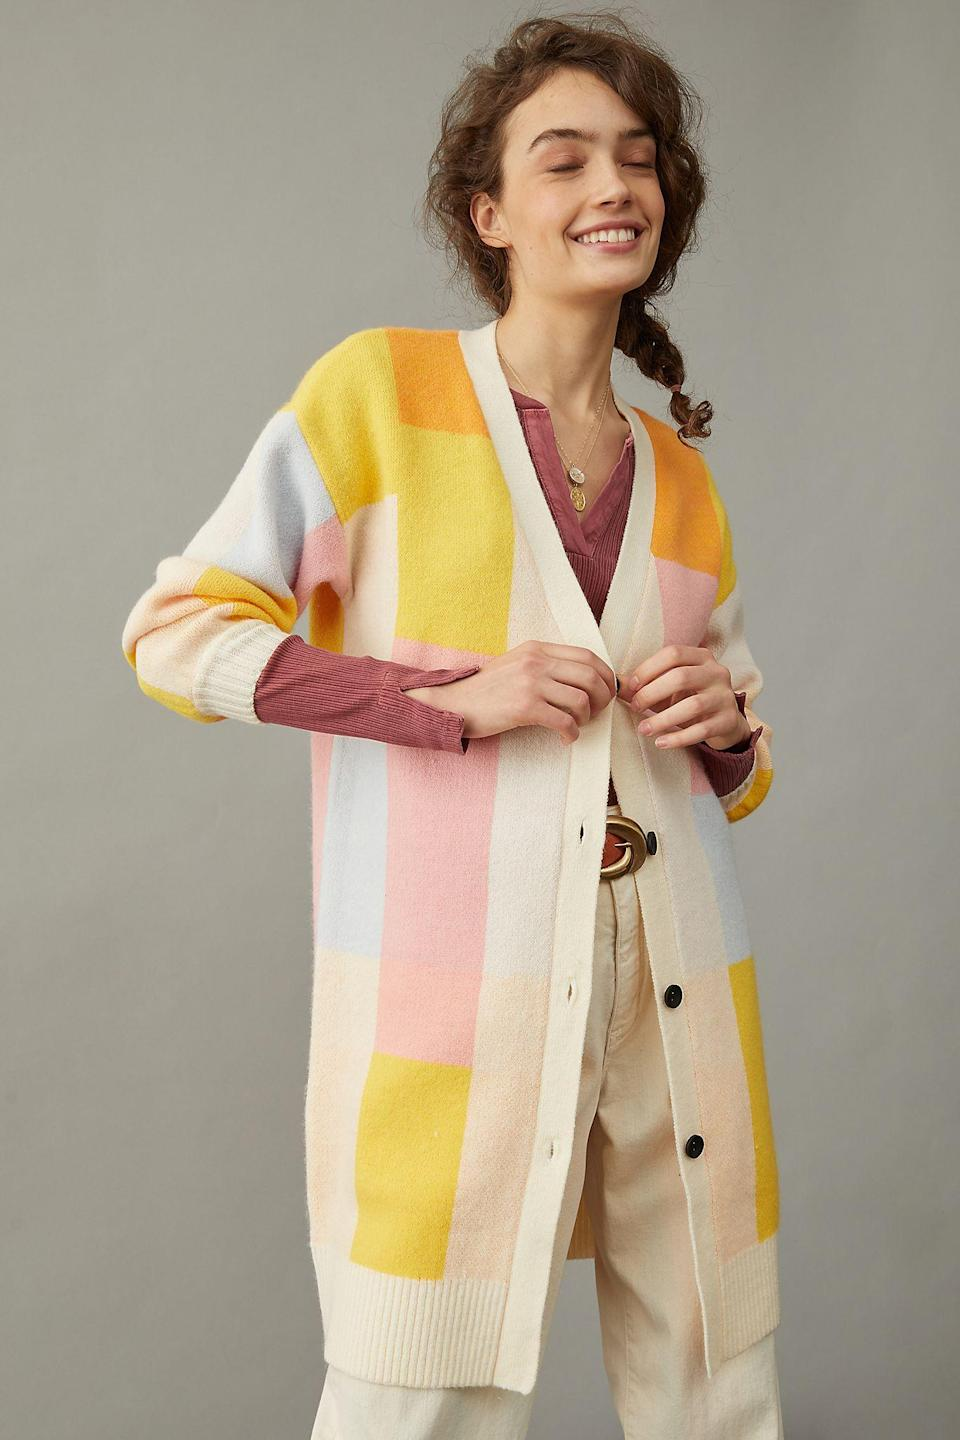 """<br><br><strong>Amadi</strong> Lexie Colorblocked Cardigan, $, available at <a href=""""https://go.skimresources.com/?id=30283X879131&url=https%3A%2F%2Fwww.anthropologie.com%2Fshop%2Flexie-colorblocked-cardigan"""" rel=""""nofollow noopener"""" target=""""_blank"""" data-ylk=""""slk:Anthropologie"""" class=""""link rapid-noclick-resp"""">Anthropologie</a>"""